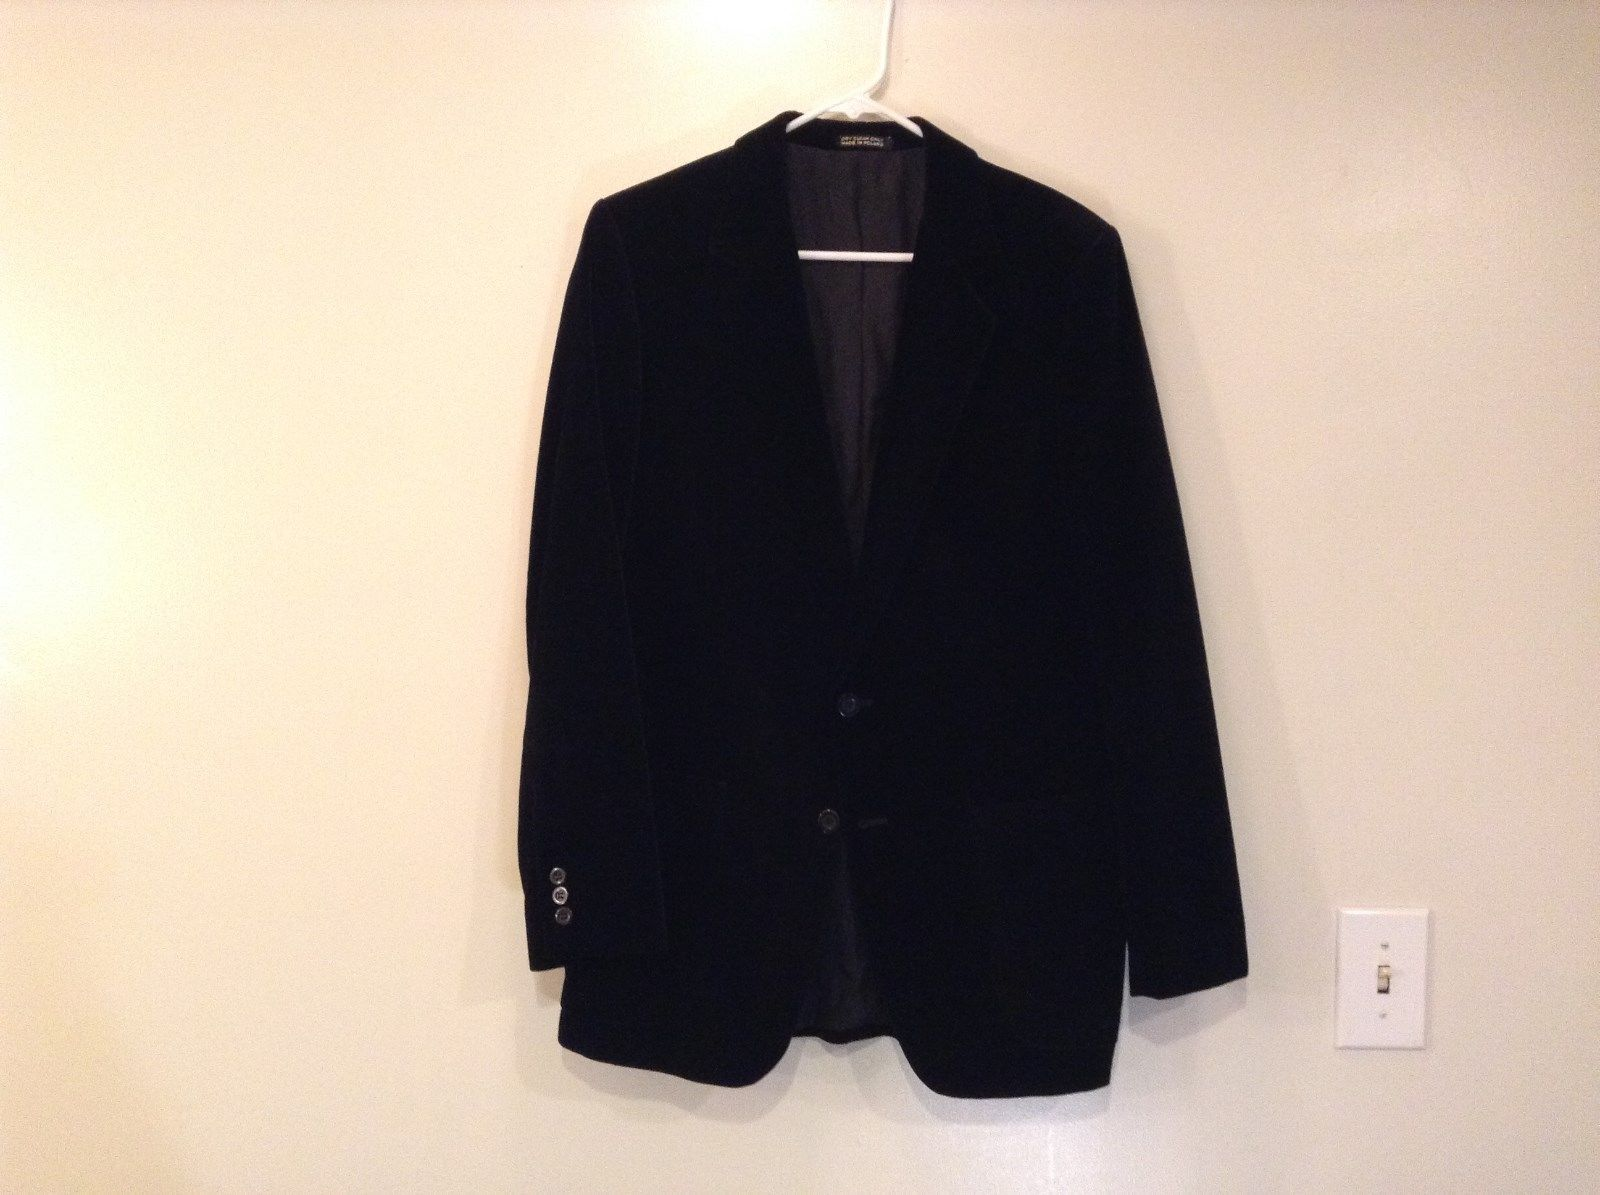 Jaguar Black Velvet Two Button Closure Two Front Pockets Blazer Jacket Size 38R